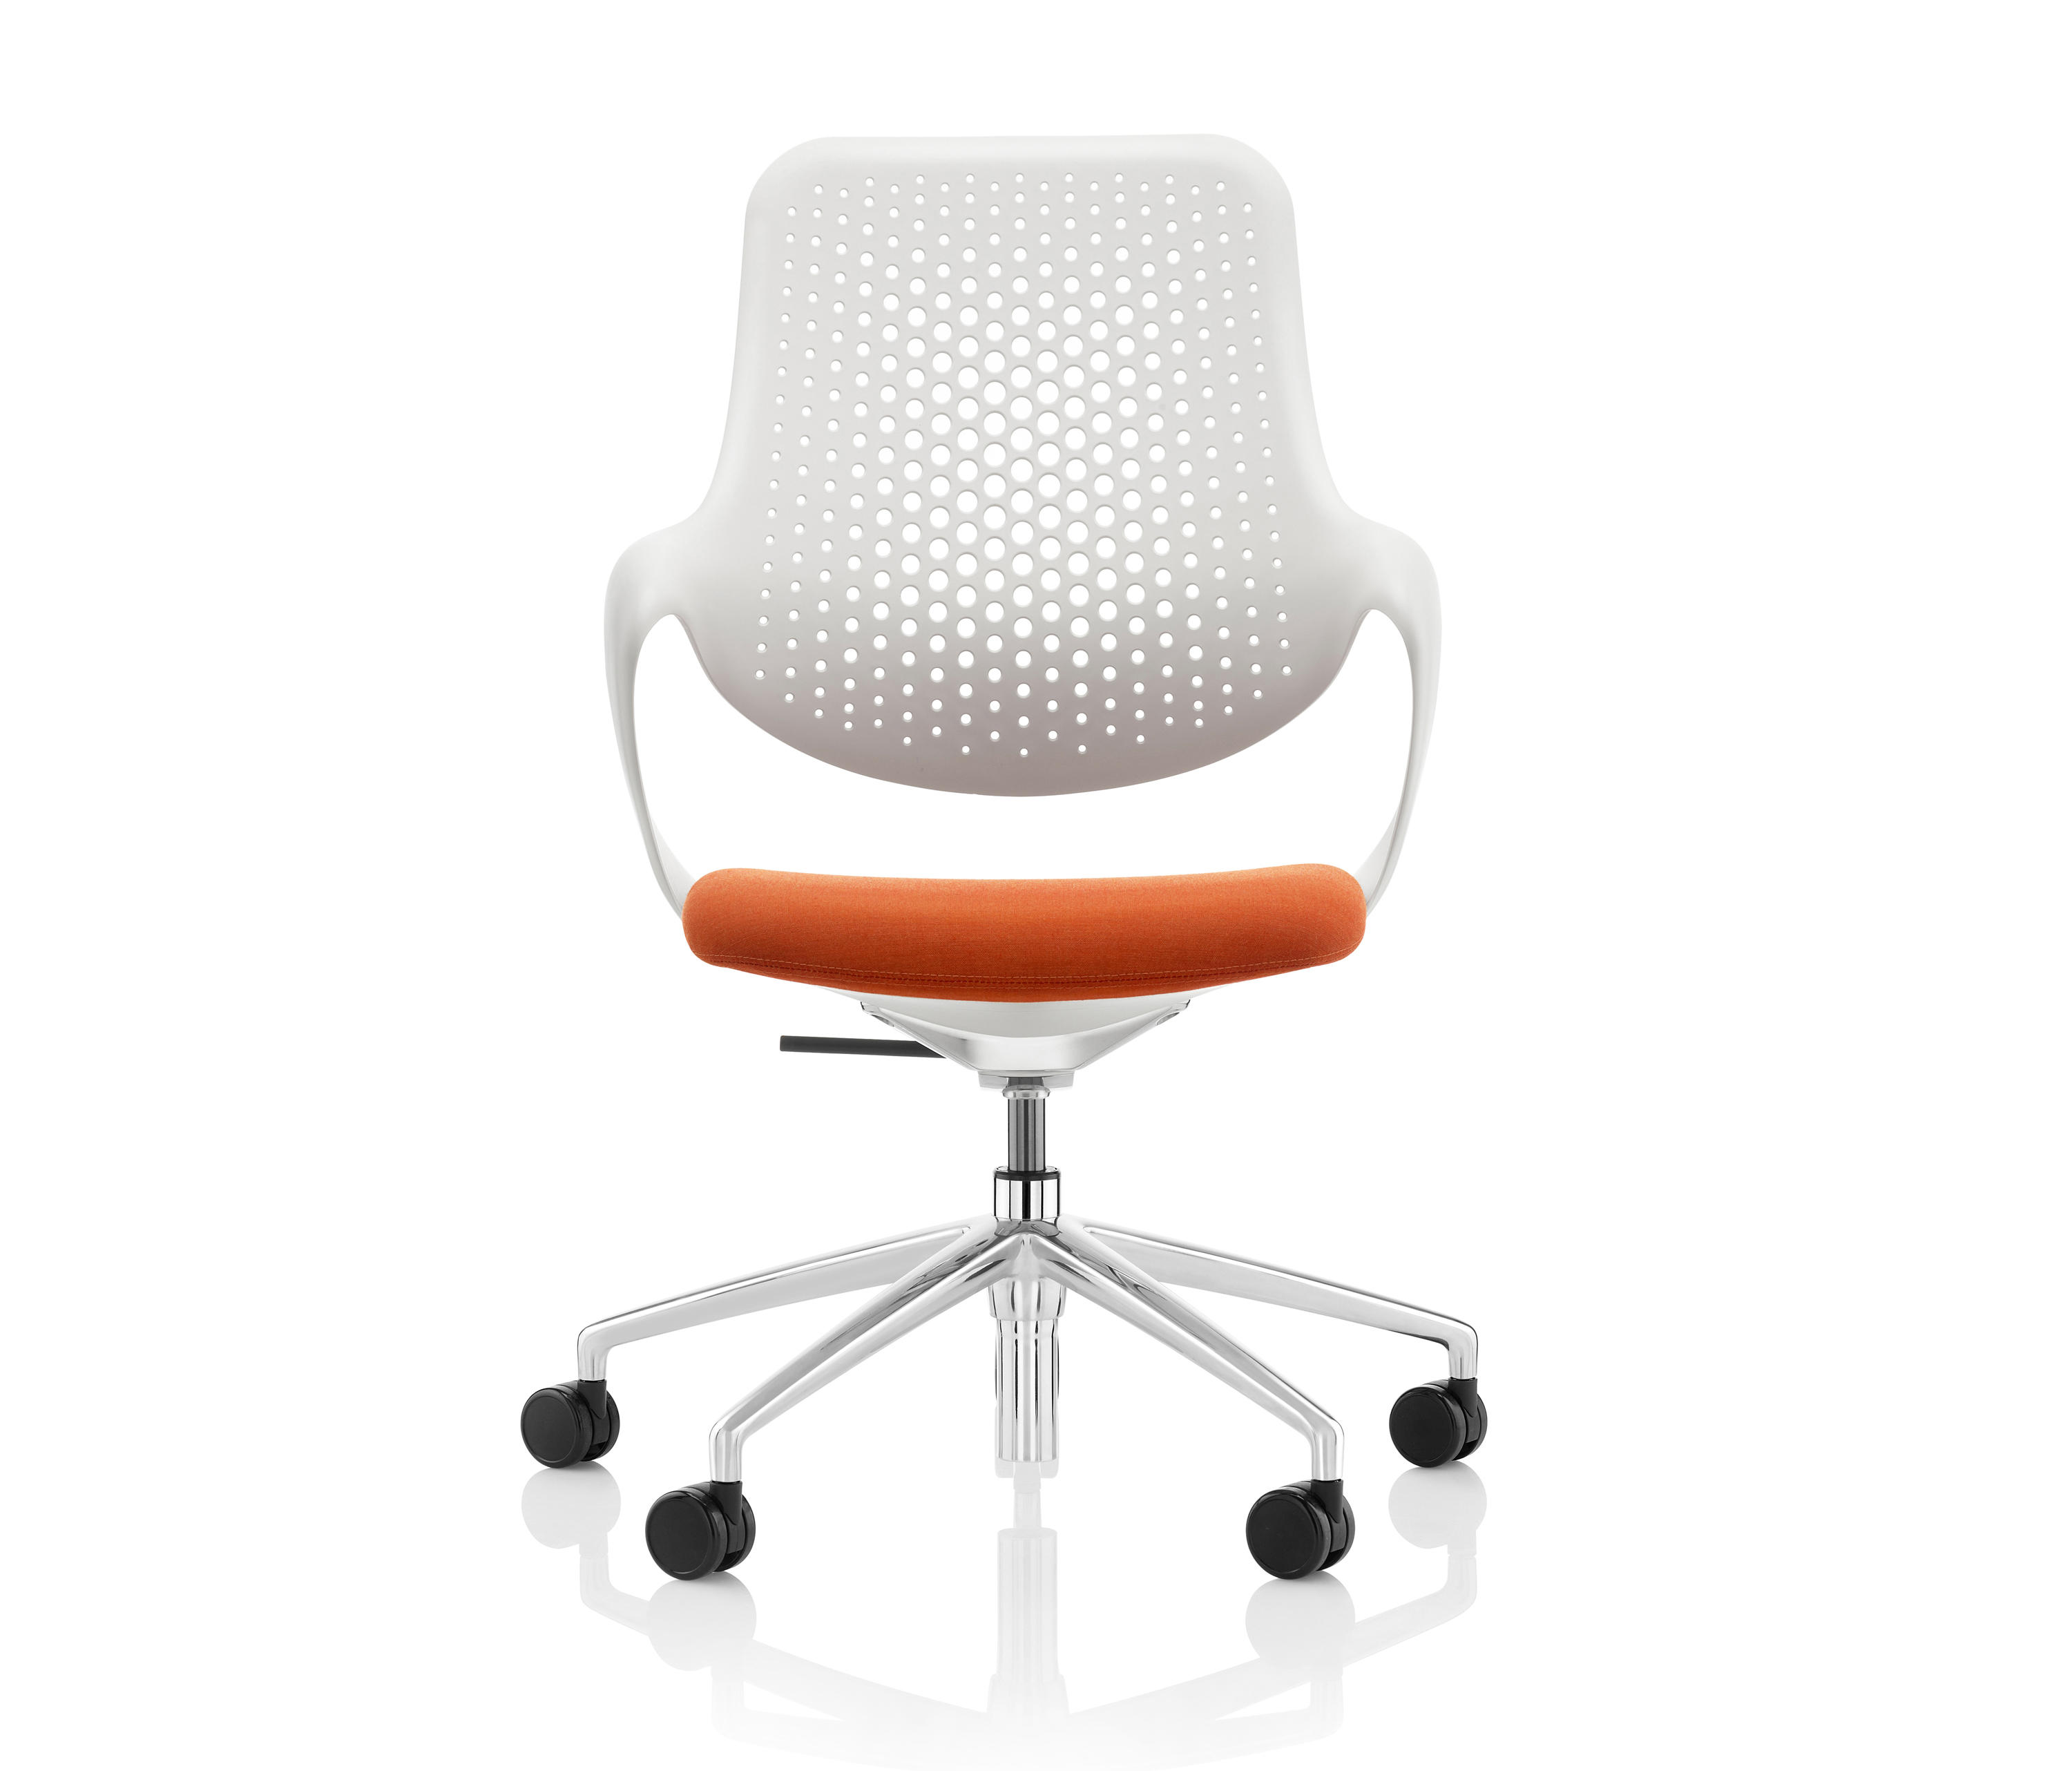 TASK CHAIRS High quality designer TASK CHAIRS Architonic